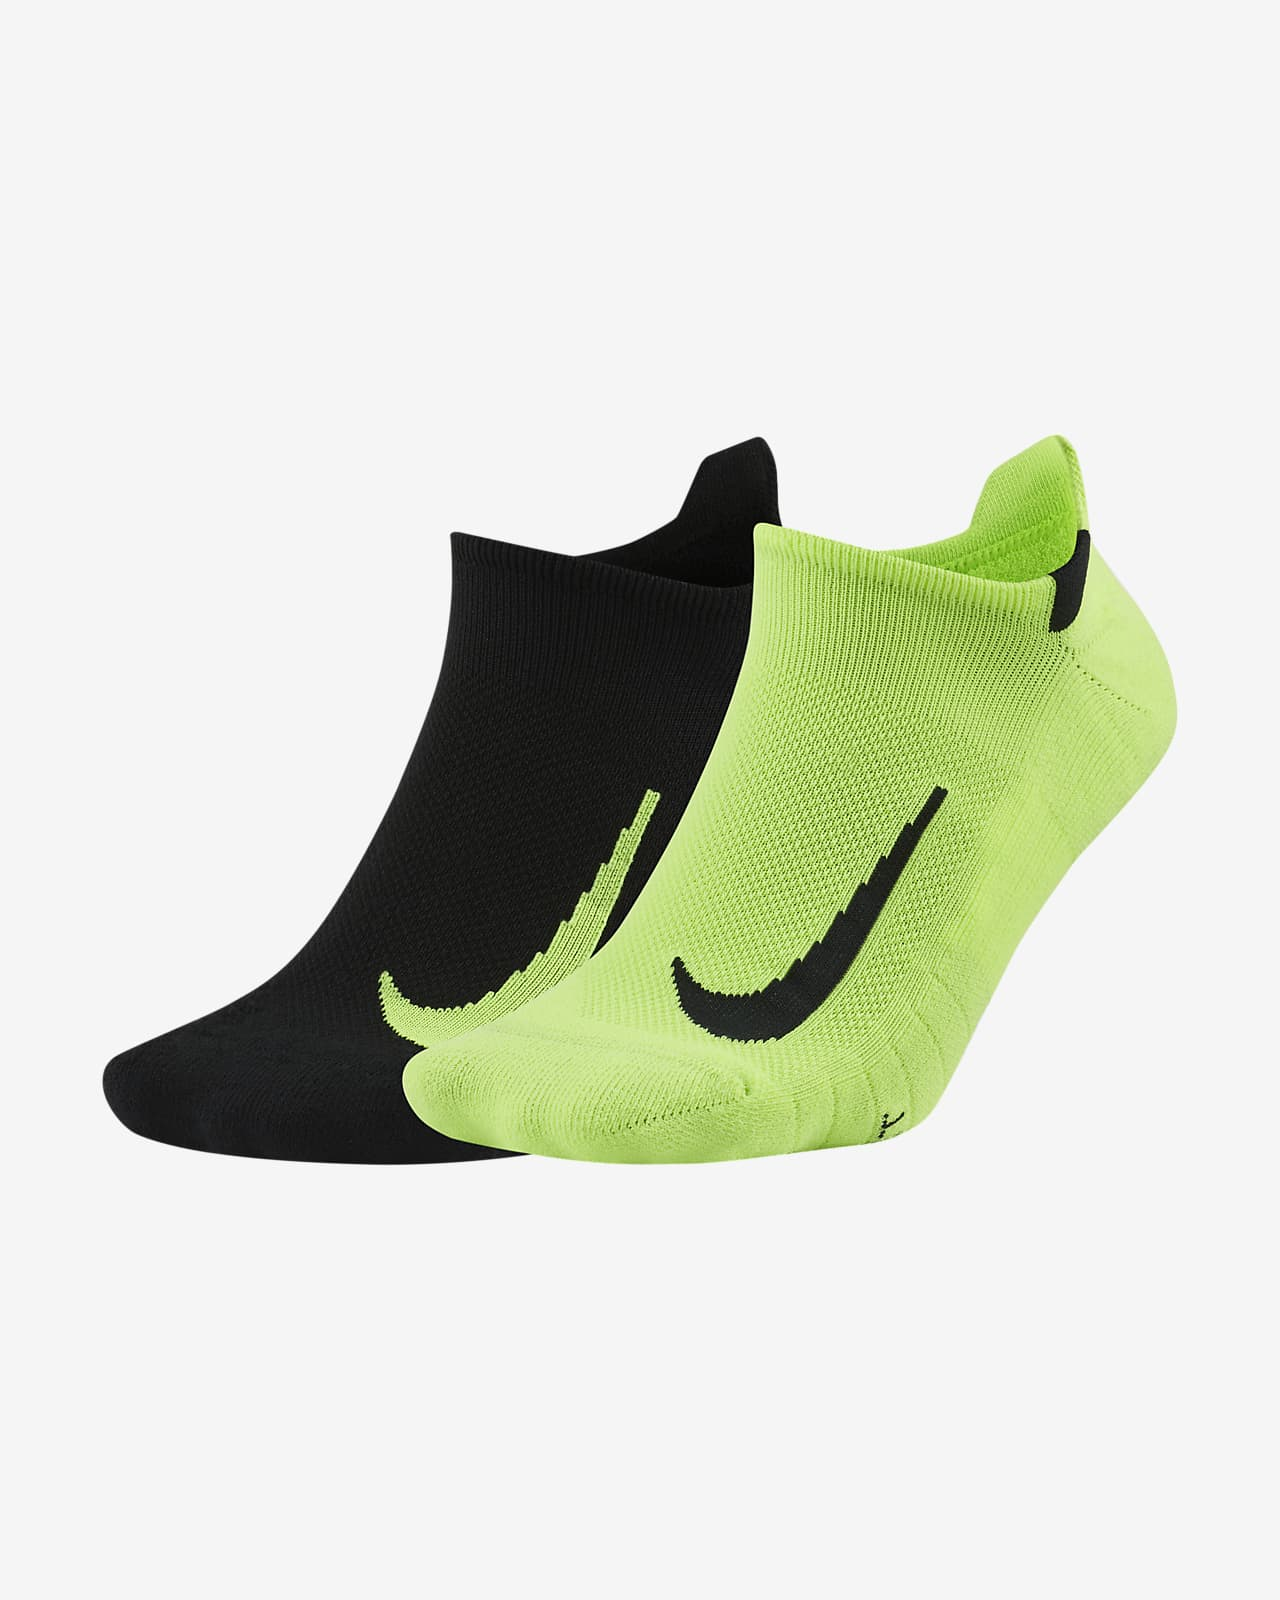 Calcetines invisibles de running Nike Multiplier (2 pares)